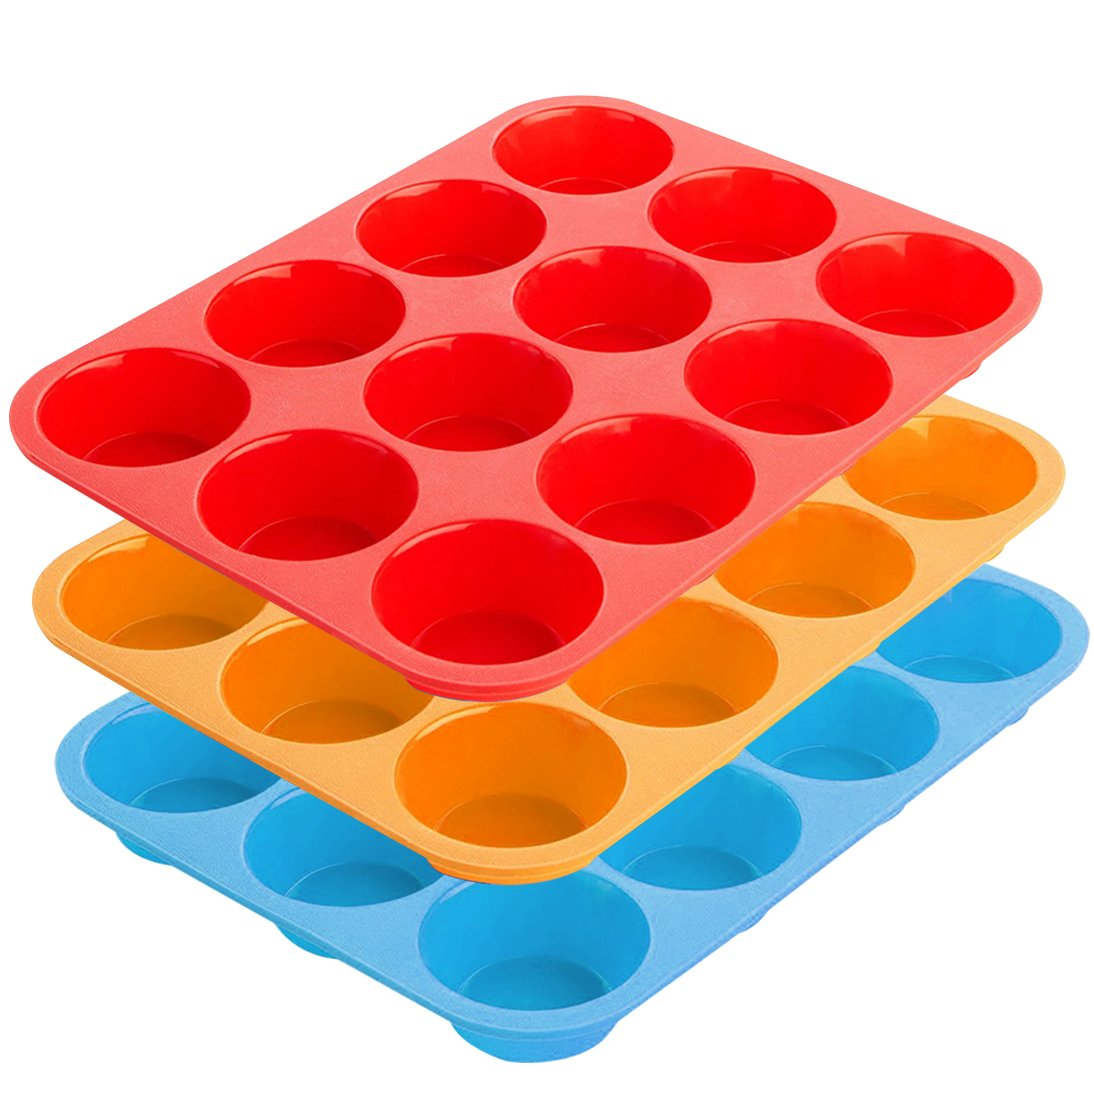 12-Cup Silicone Muffin & Cupcake Baking Pan, YuCool 3 Pack Silicone Molds for Muffin Tins, Cakes, BPA Free Non-stick Microwave Oven Safe ( Orange, Red, Blue)